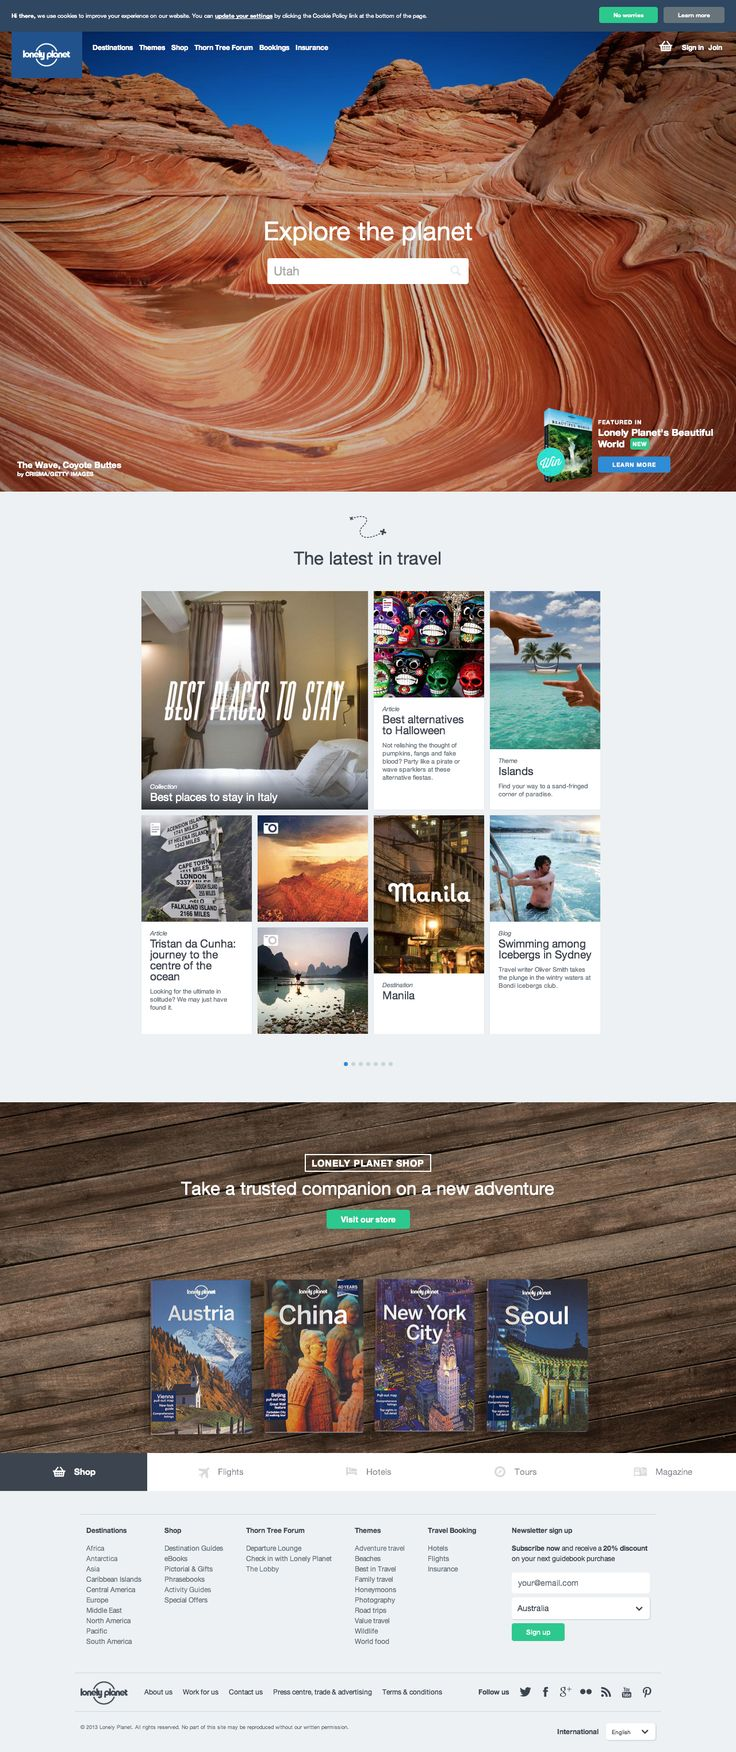 I feel like they could have done so much more with this design, but as it is, the site is straightforward, easy on the eyes, and relatively easy to navigate through A LOT of content. http://www.lonelyplanet.com